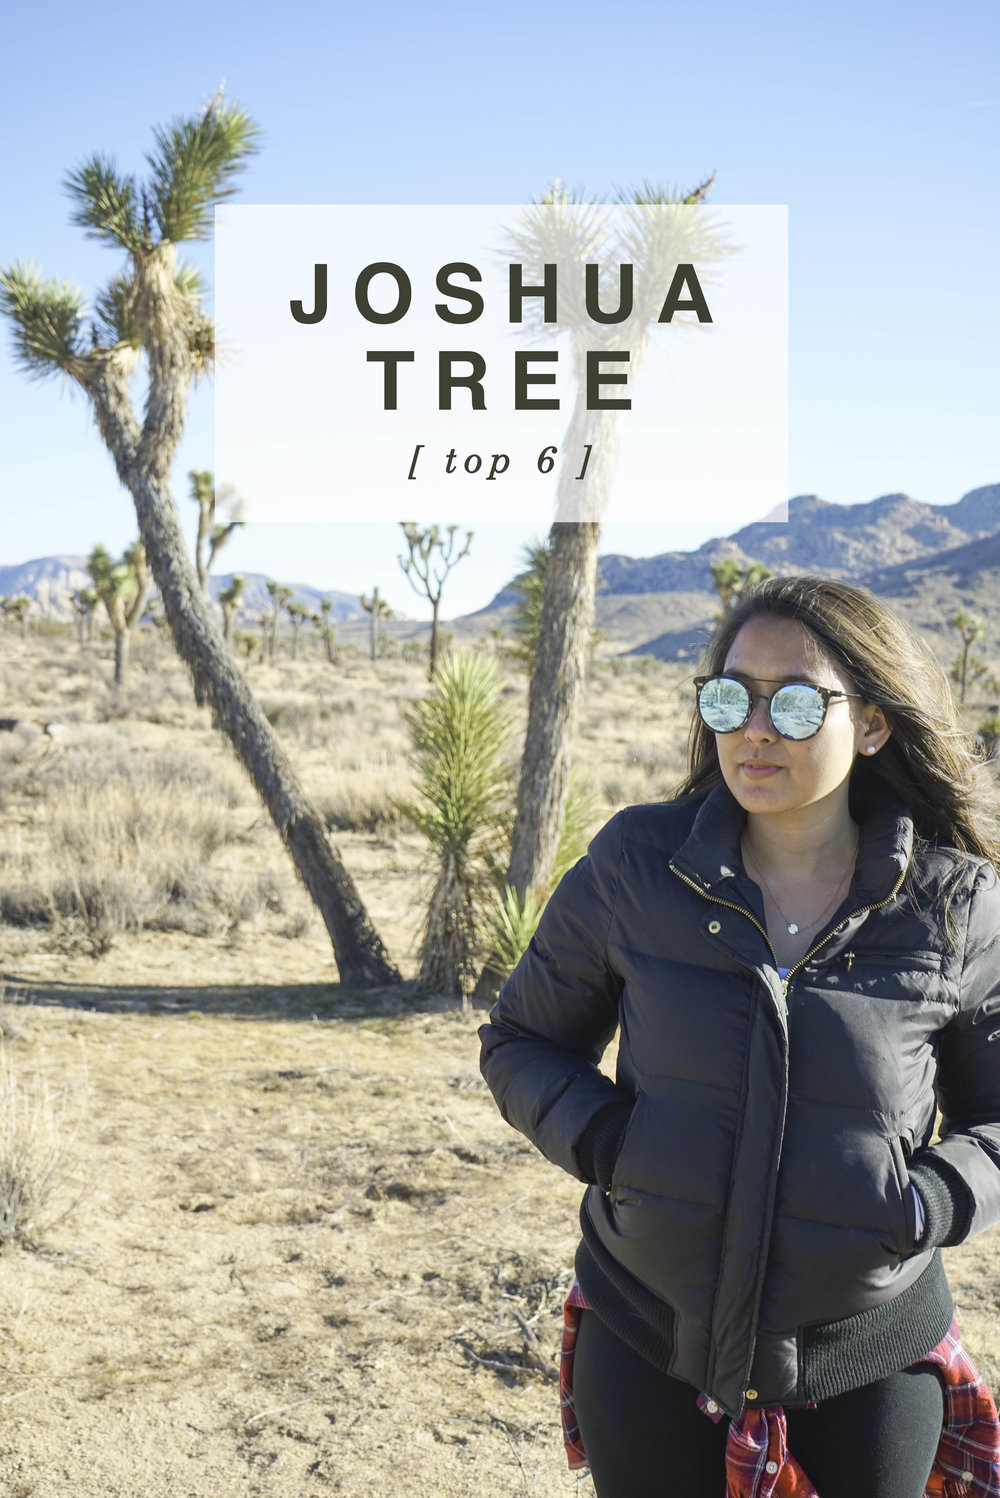 Joshua Tree: Top 6 | Shannon Did What?